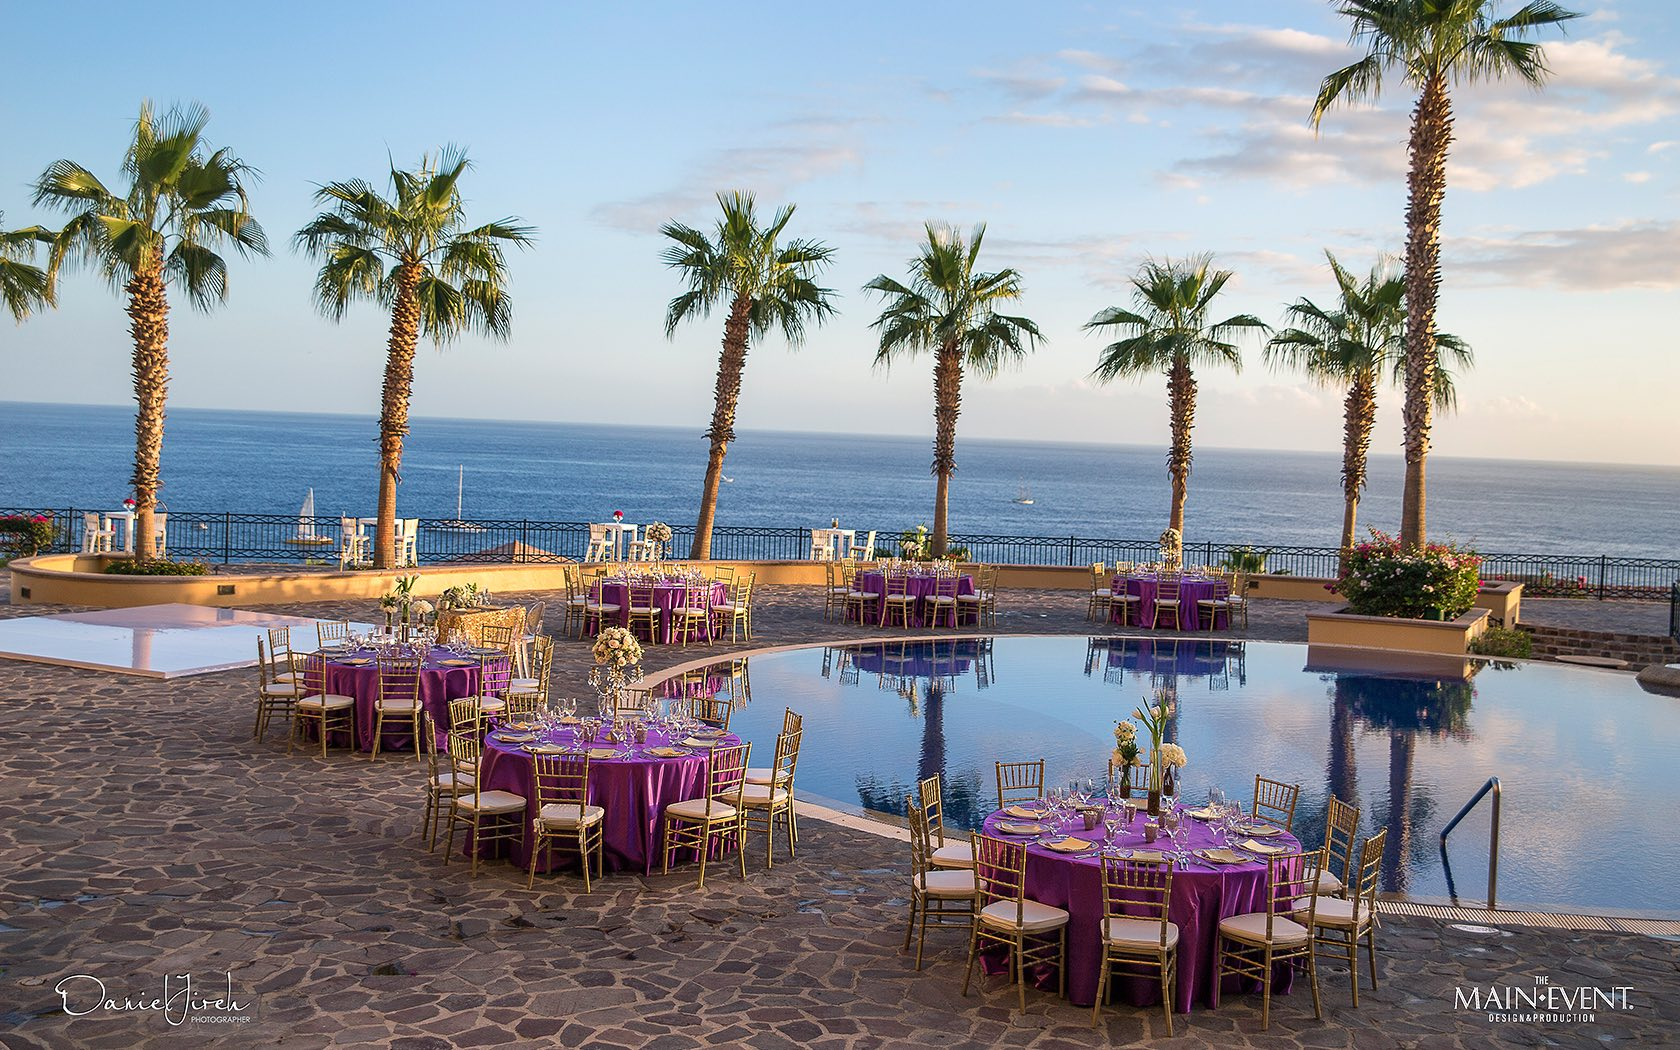 tables around pool with palm trees and ocean views